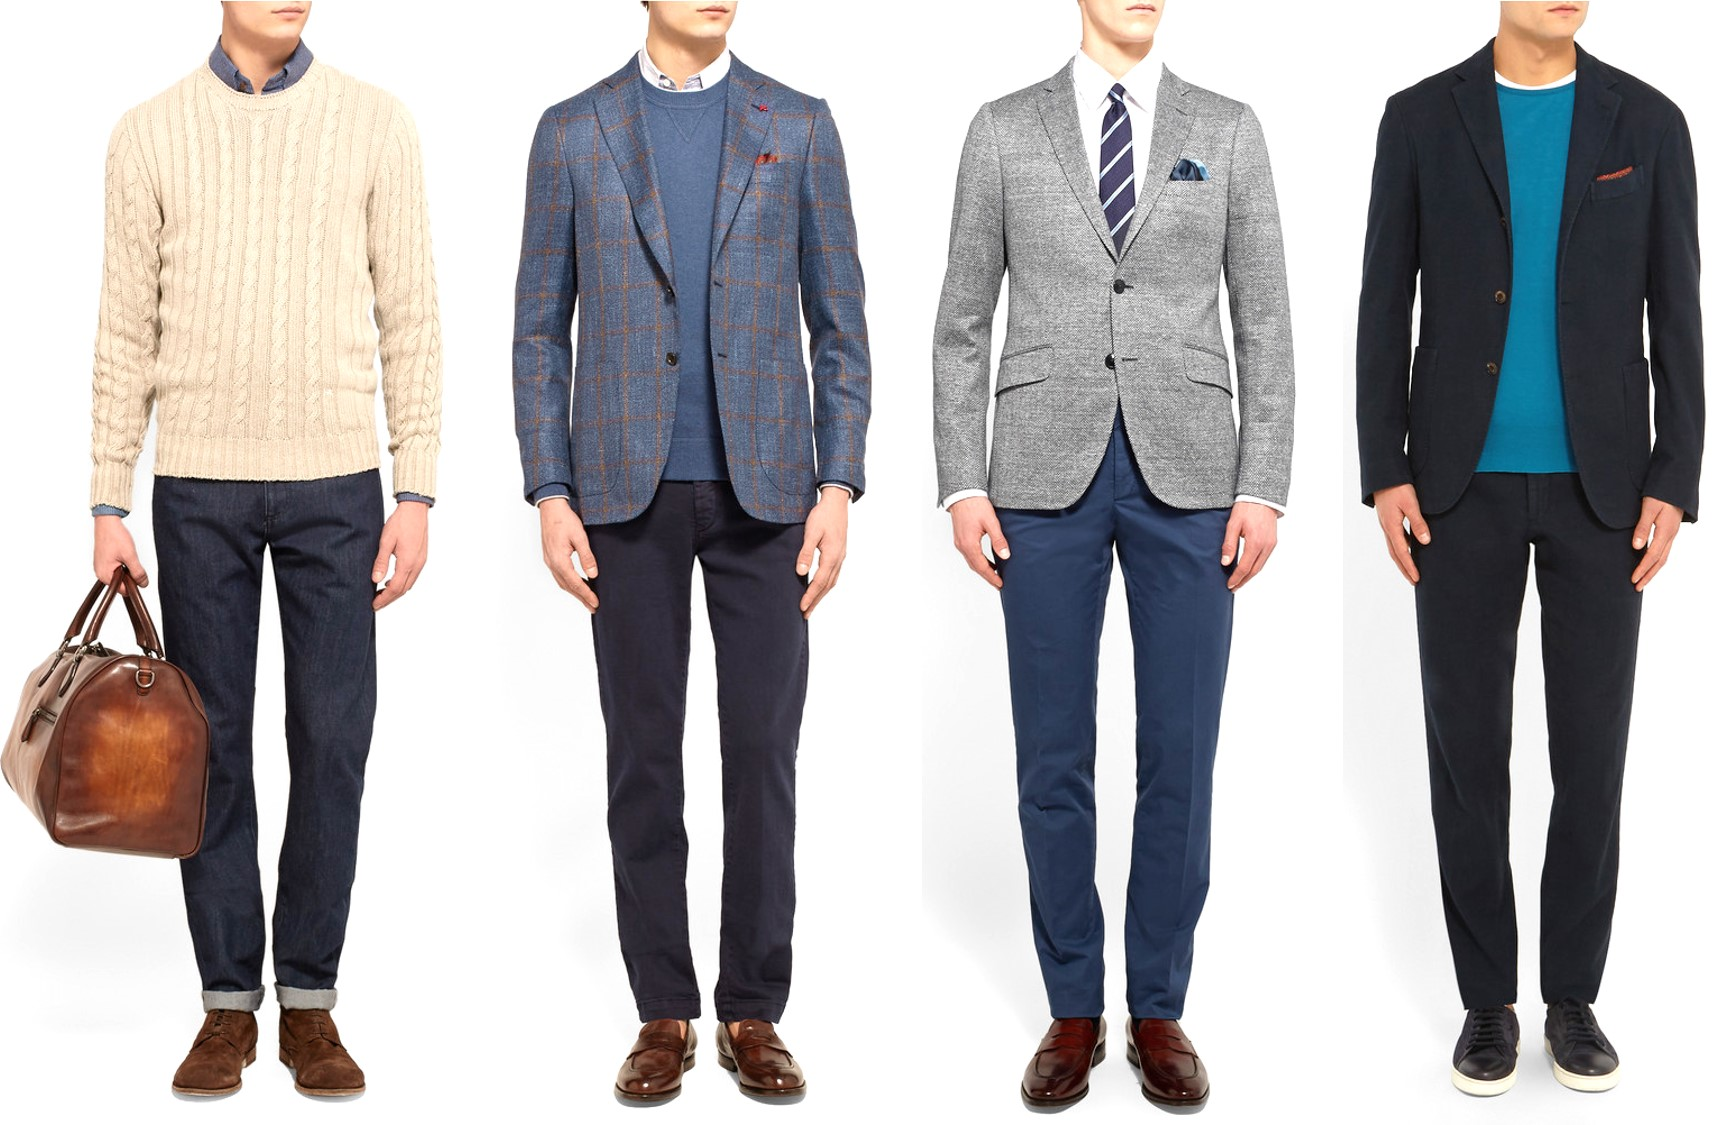 Fantastic What Not To Wear On Casual Friday | Posted By Kendra Schultz Friday March 9 2012 | Work ...